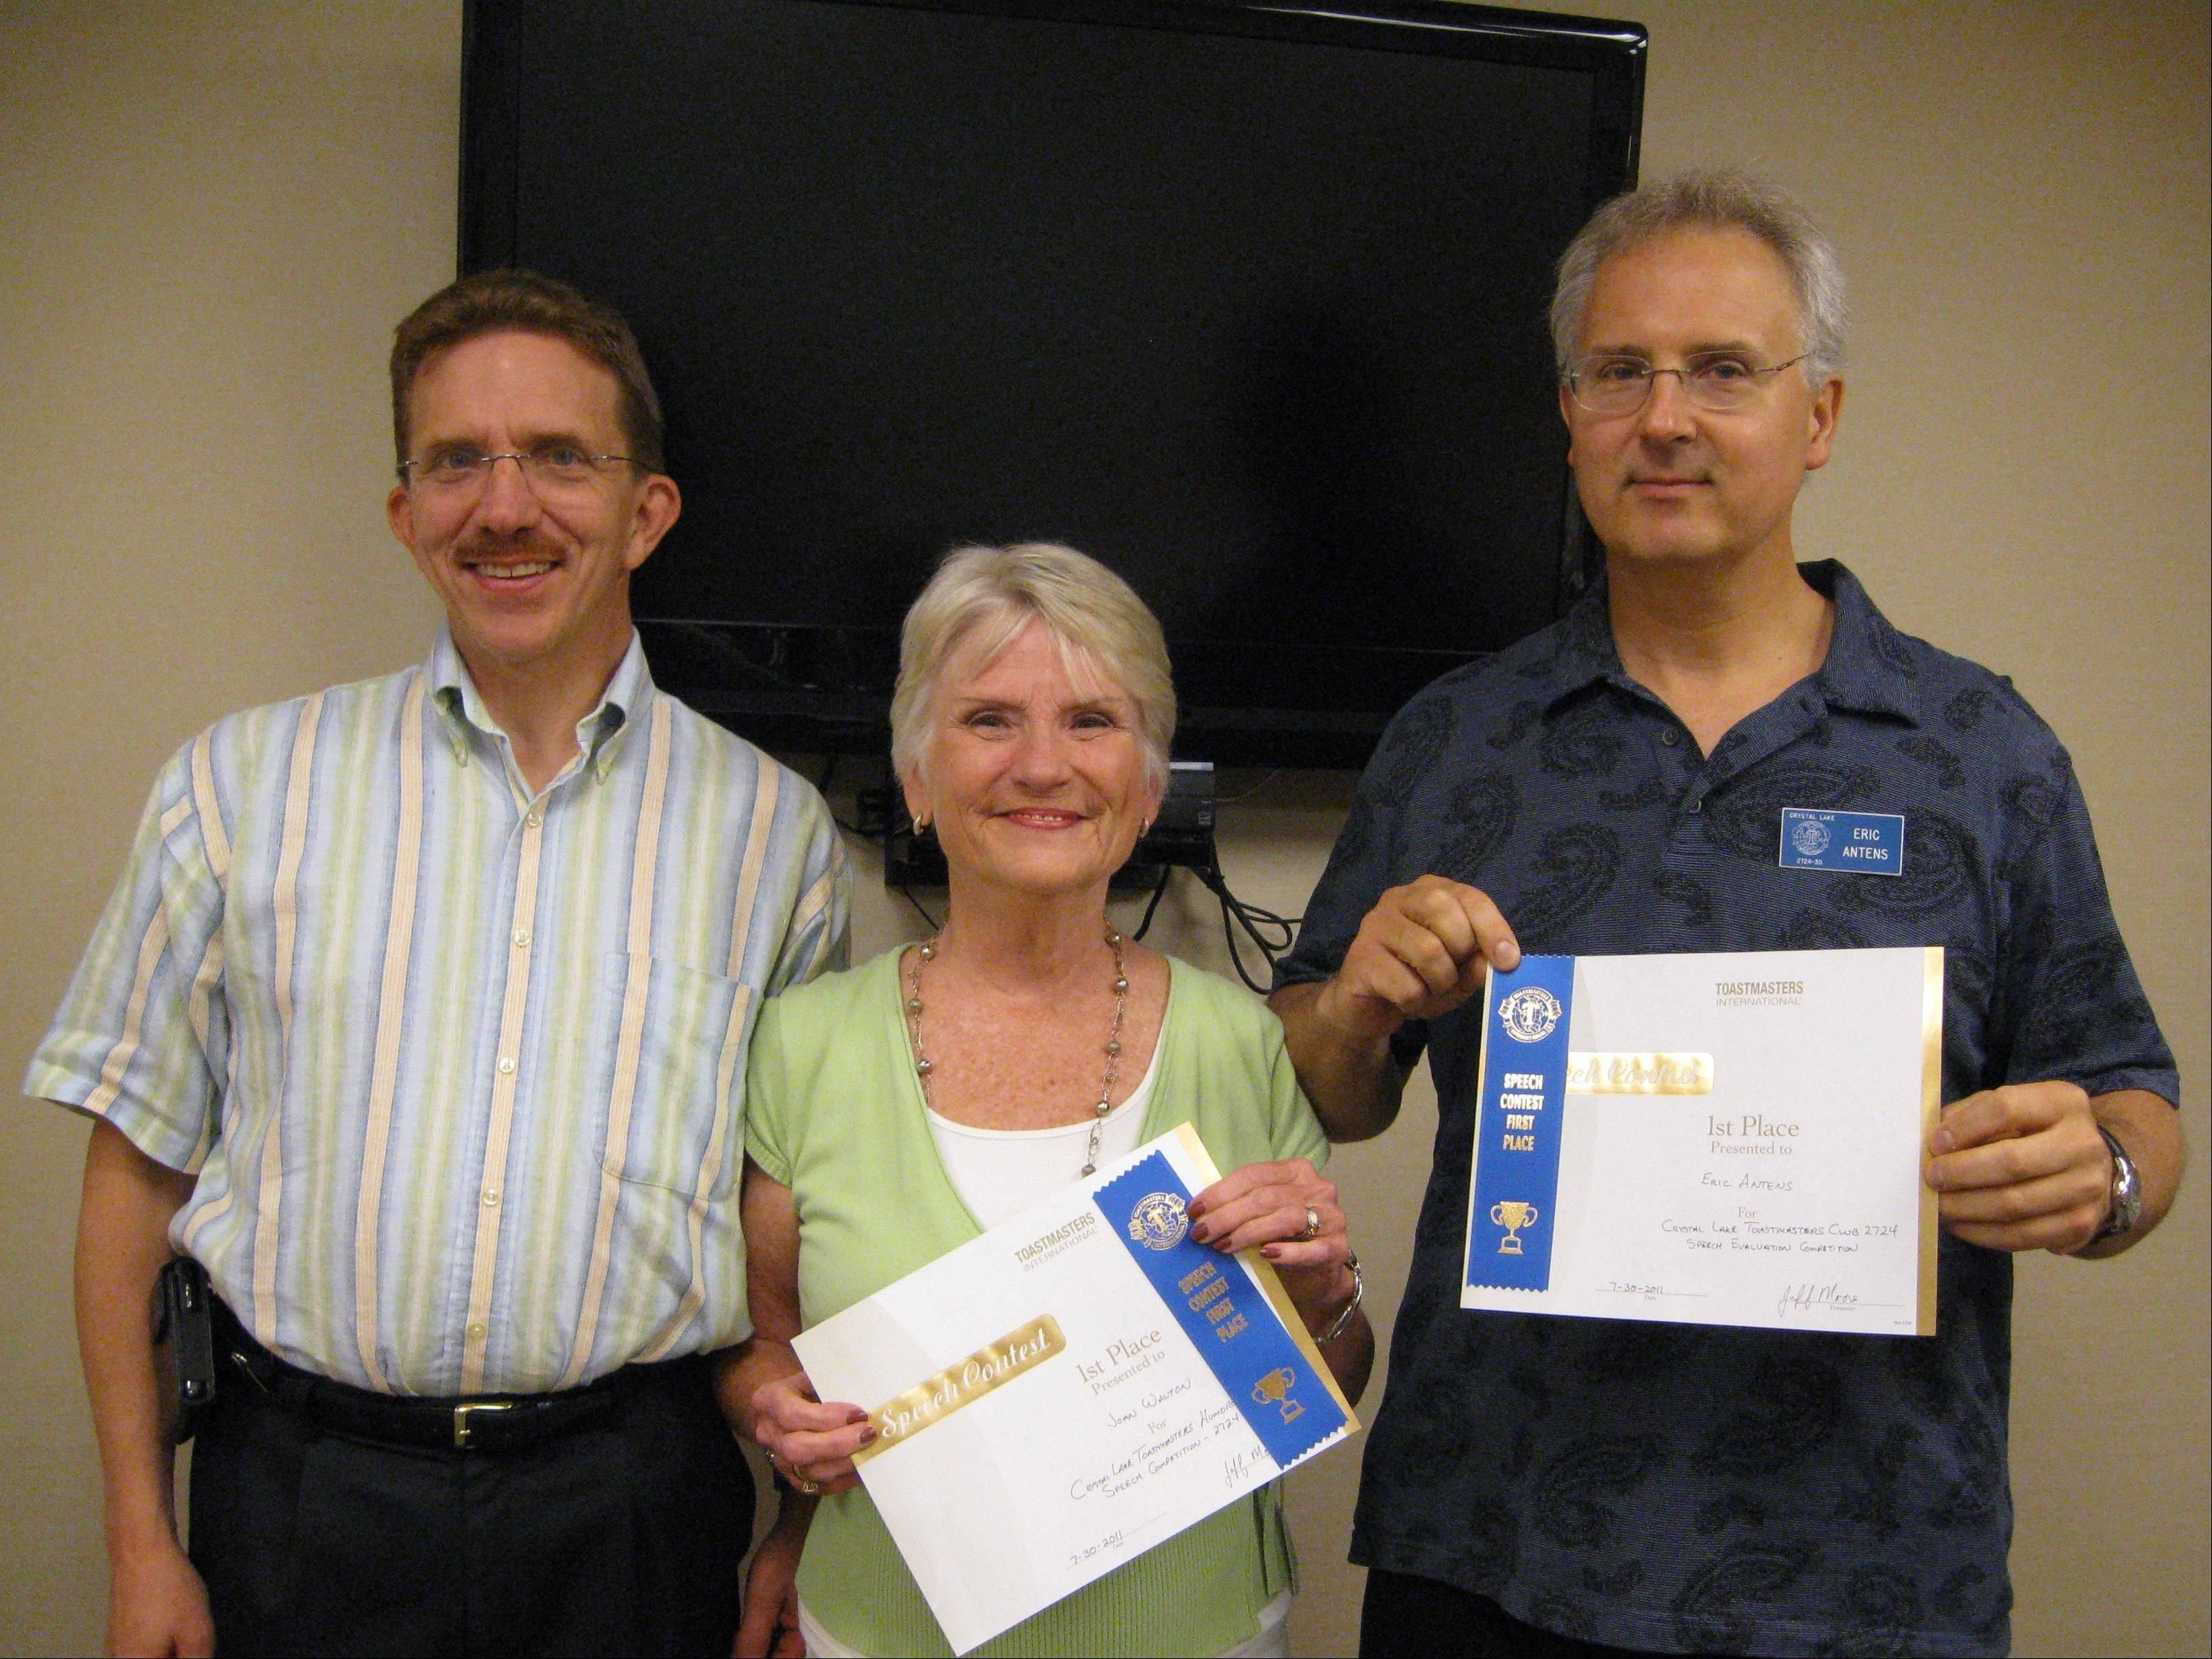 Crystal Lake Toastmasters contest Chairman Duane Lahti, left, congratulates Joan Walton of Huntley and Eric Antens of Cary on their wins in the recent Humorous Speech and Evaluation Speech Contests.